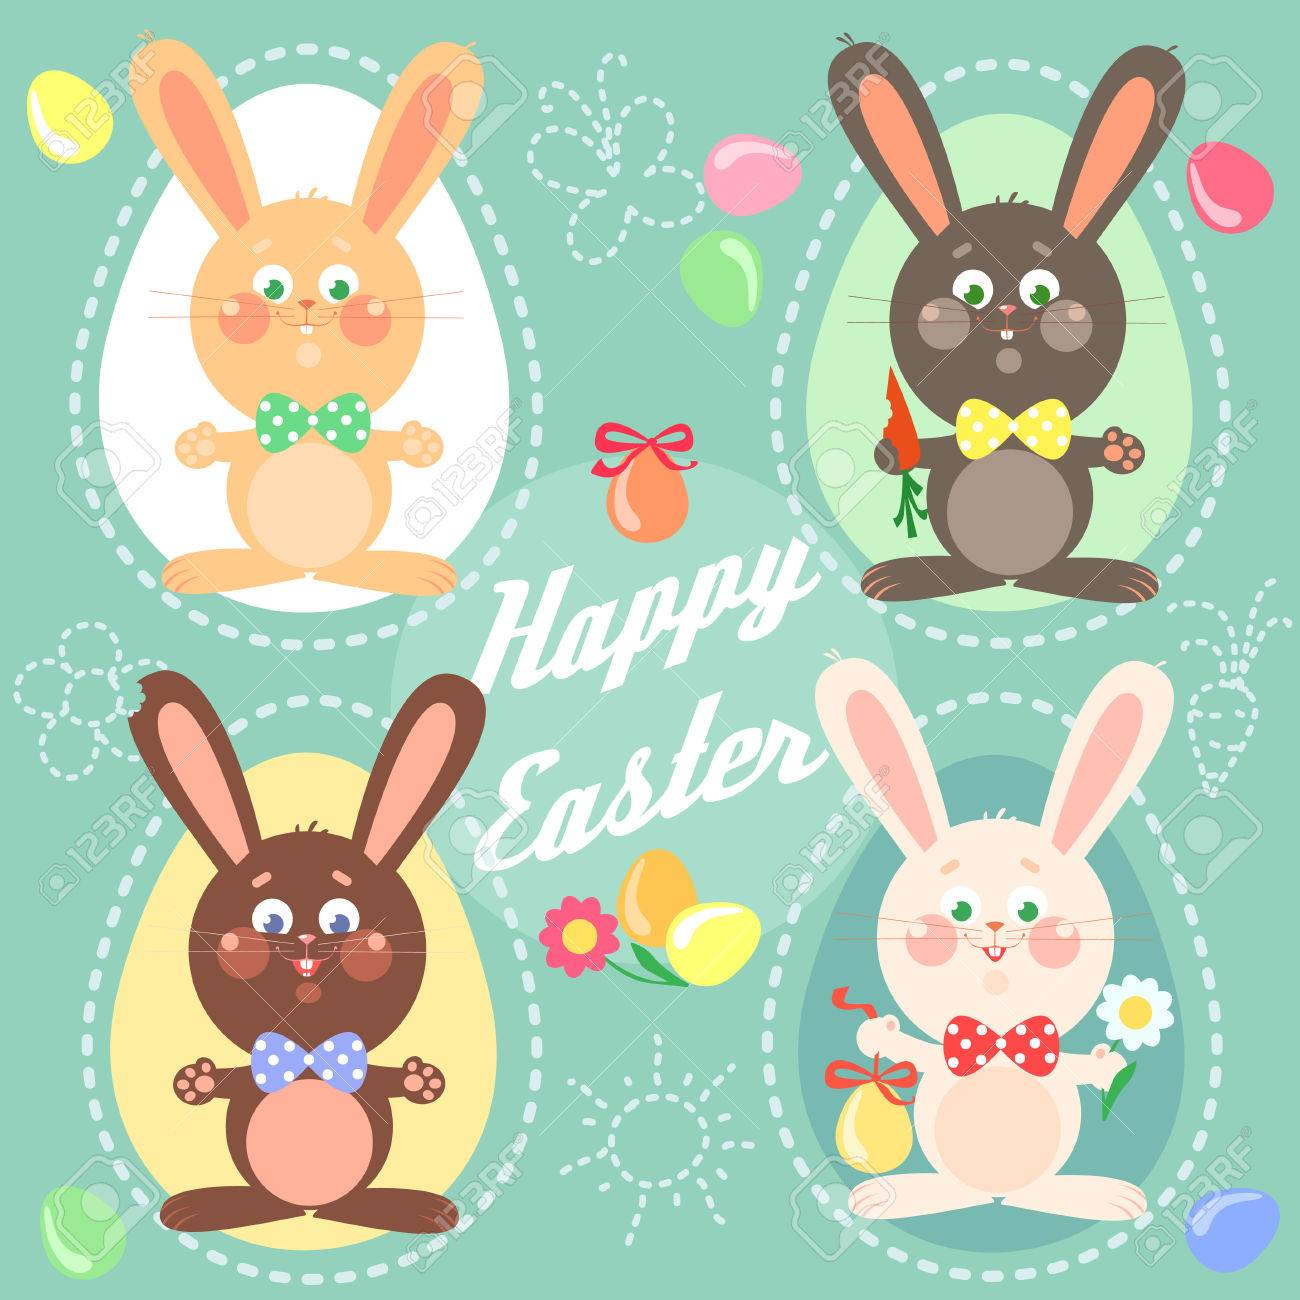 Happy Easter Card With Bunnies Royalty Free Cliparts Vectors – Happy Easter Card